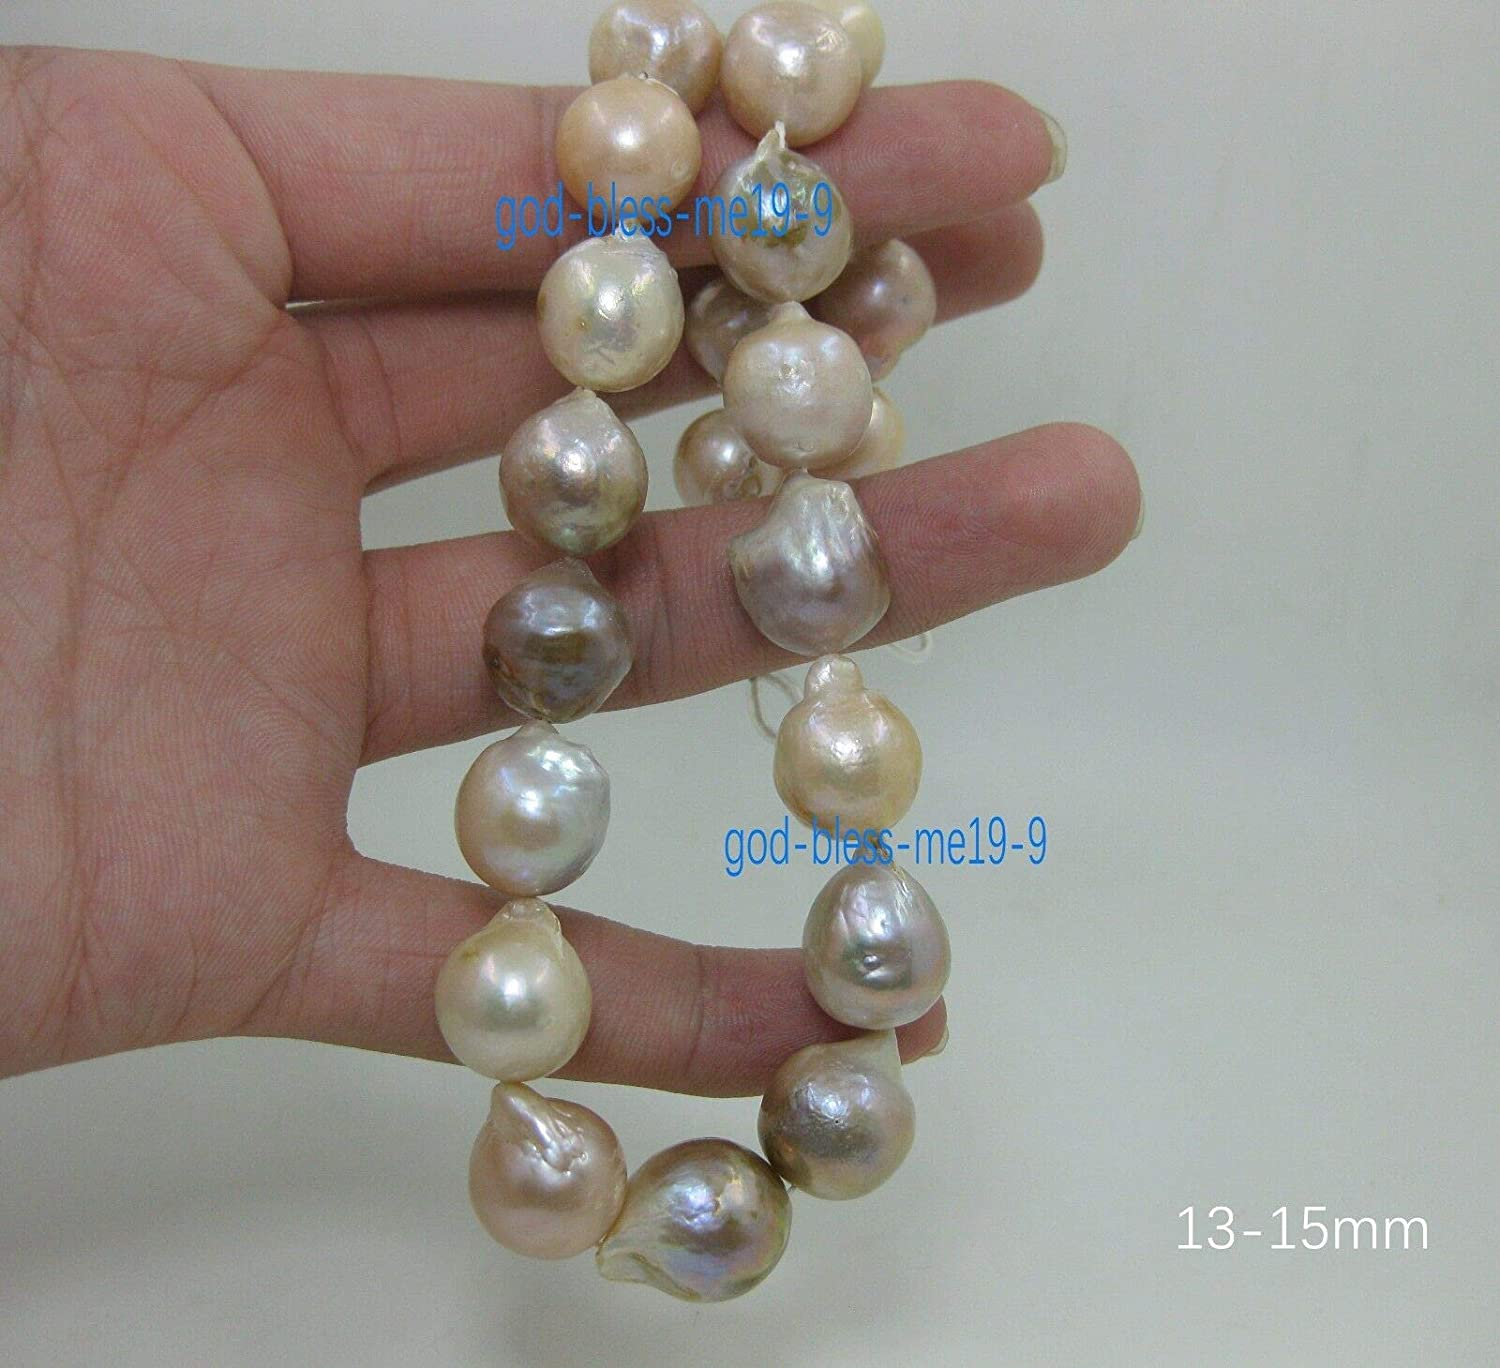 NEW HUGE NATURAL AAA+ SOUTH SEA WHITE BAROQUE PEARL NECKLACE 18/'/'